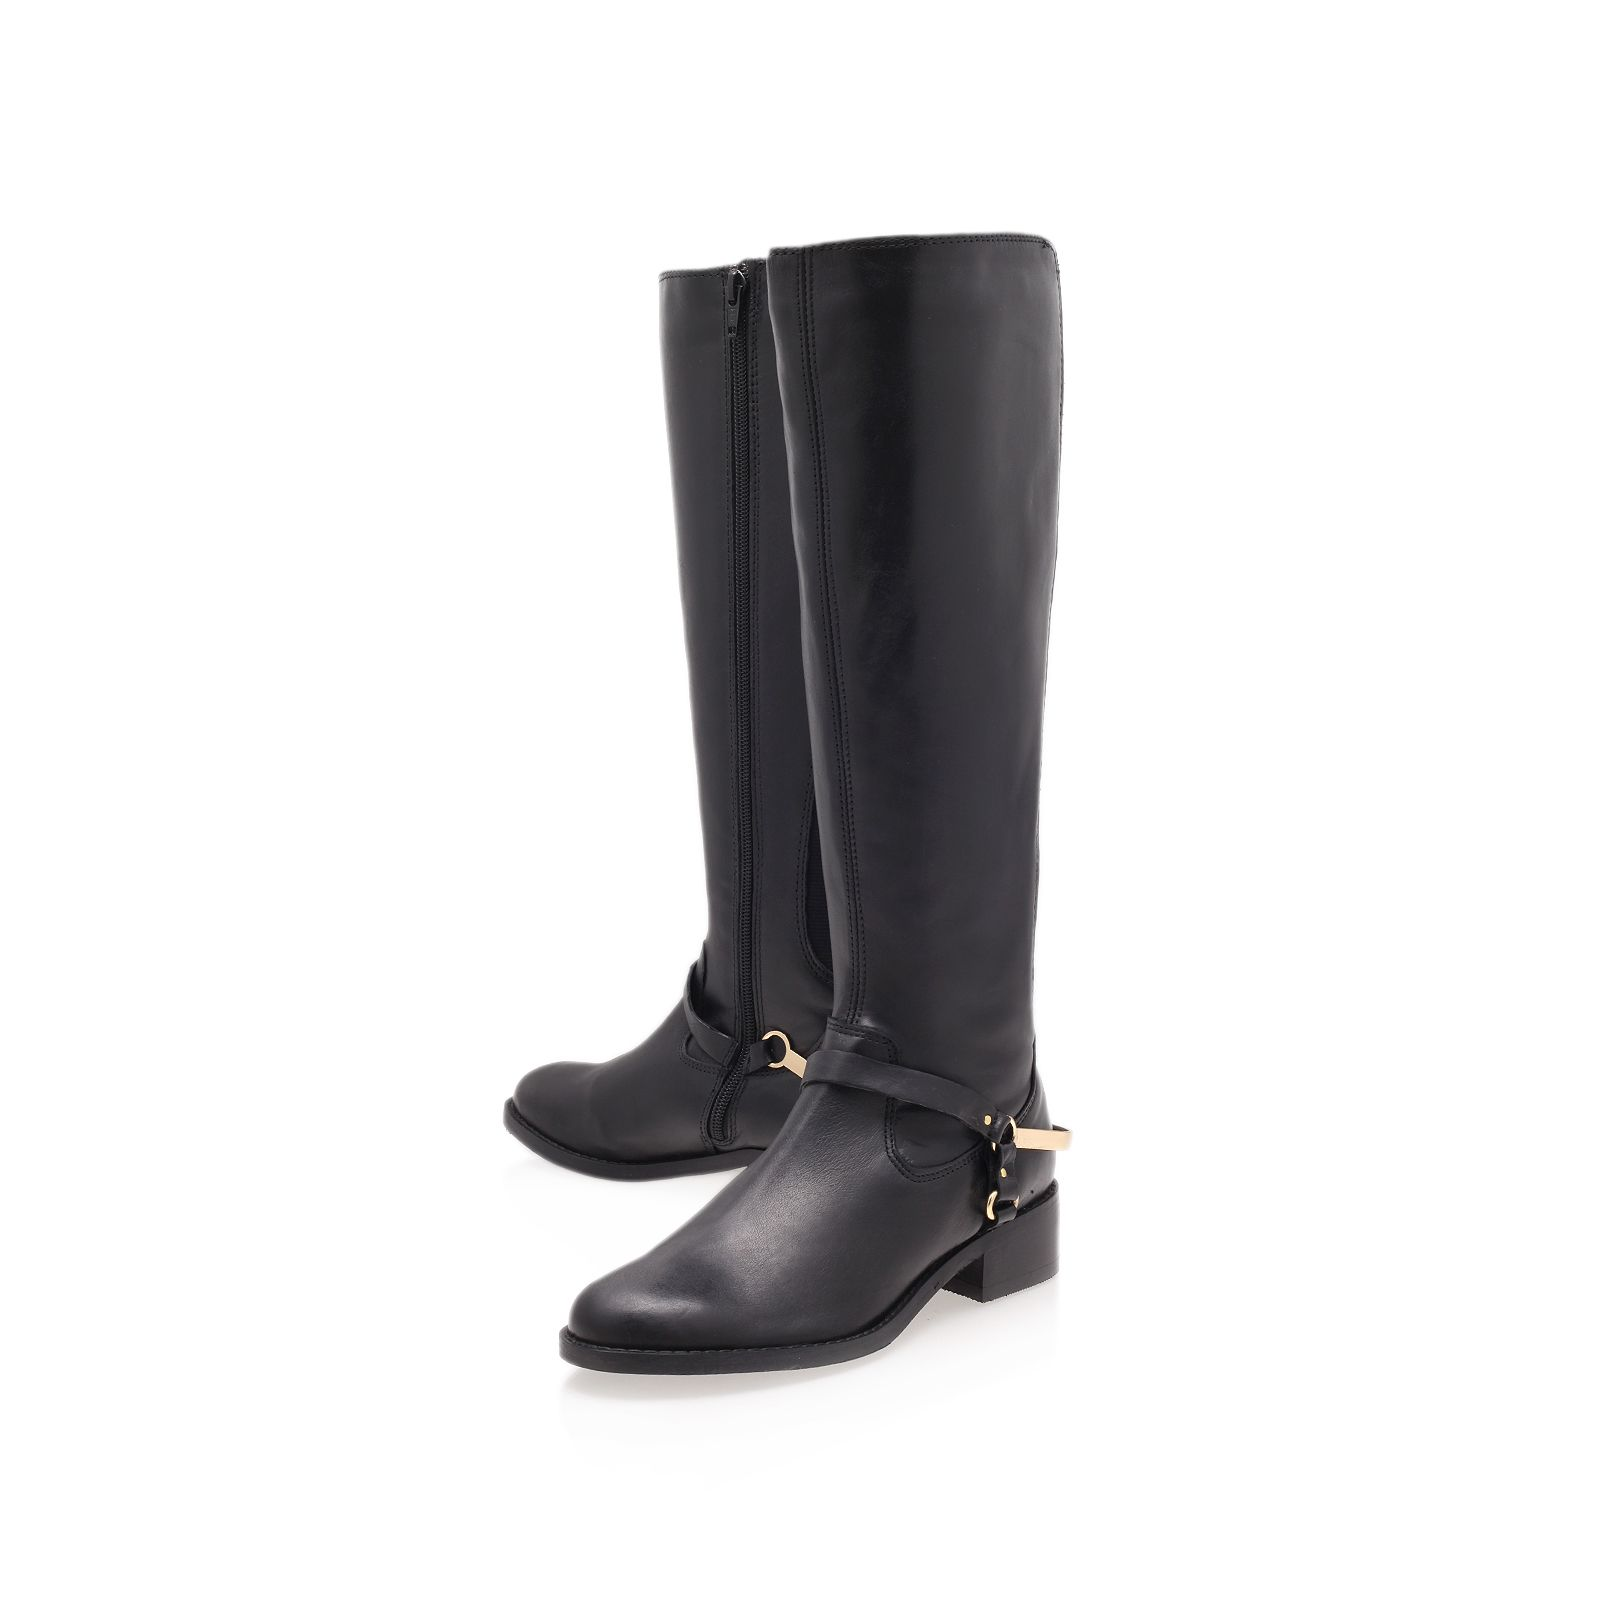 Pippa knee high boots